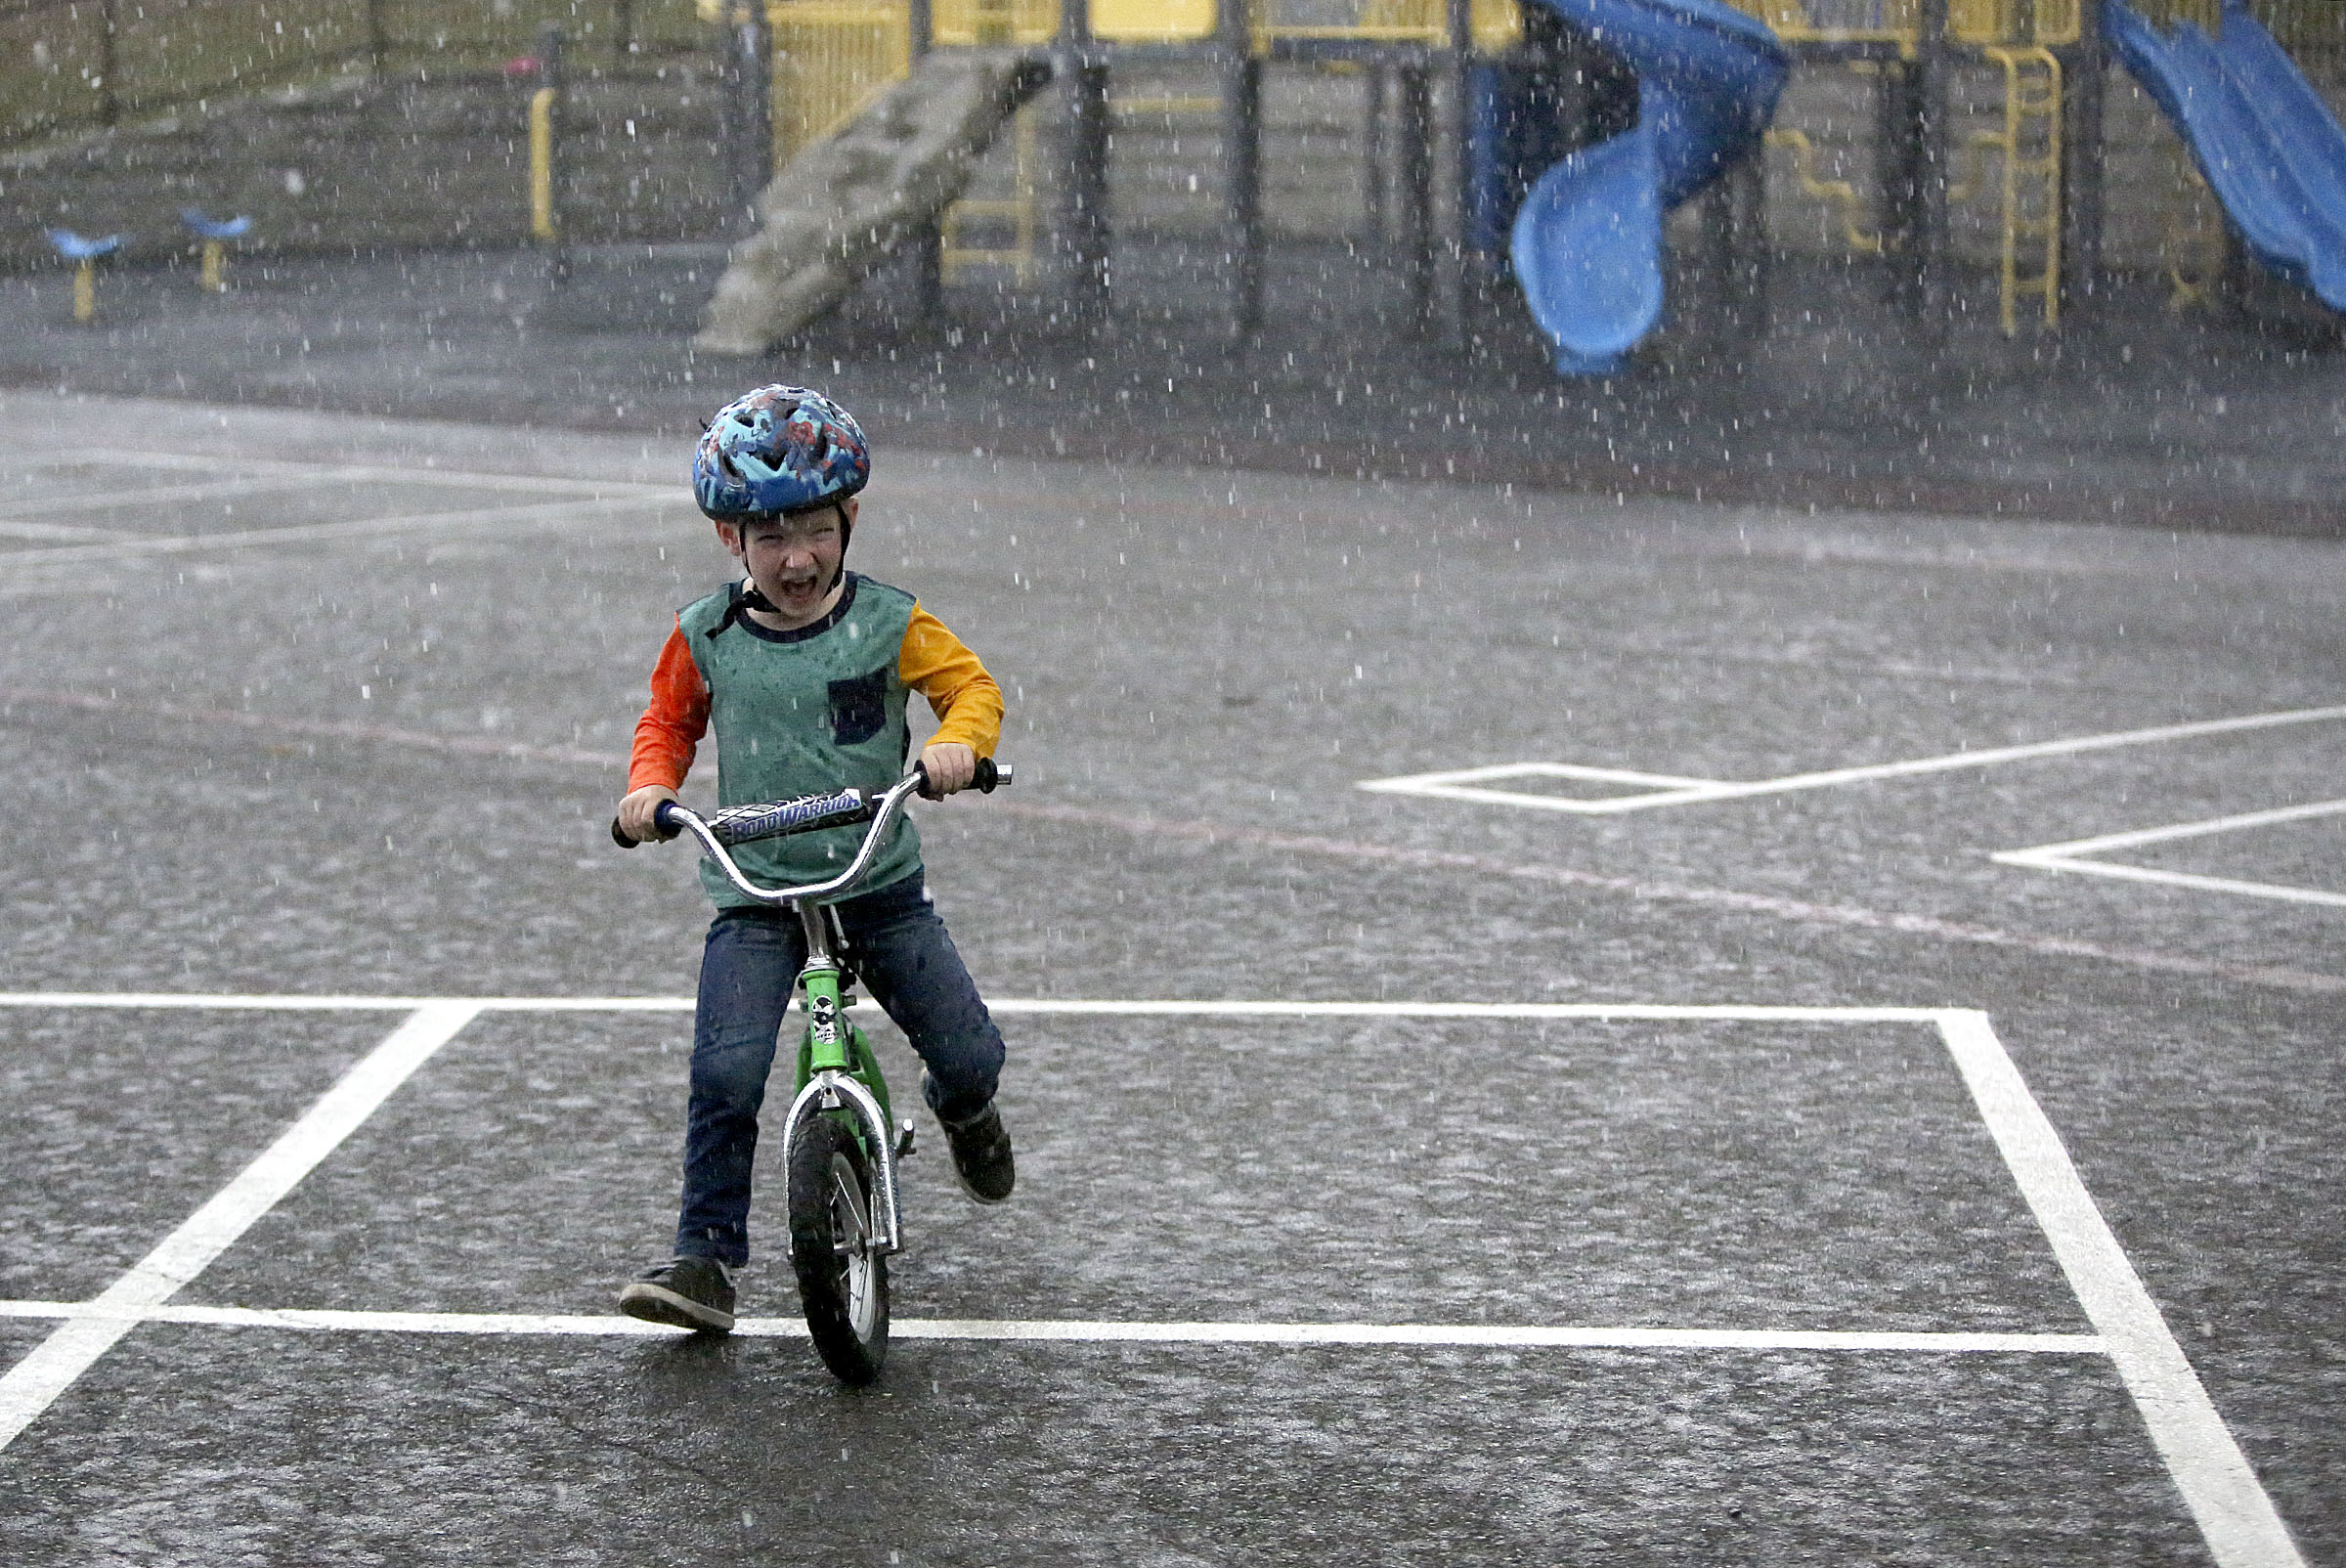 Daniel Allen gets caught in a rain storm near his home in Renton, Wash., on Friday, Sept. 14, 2018.